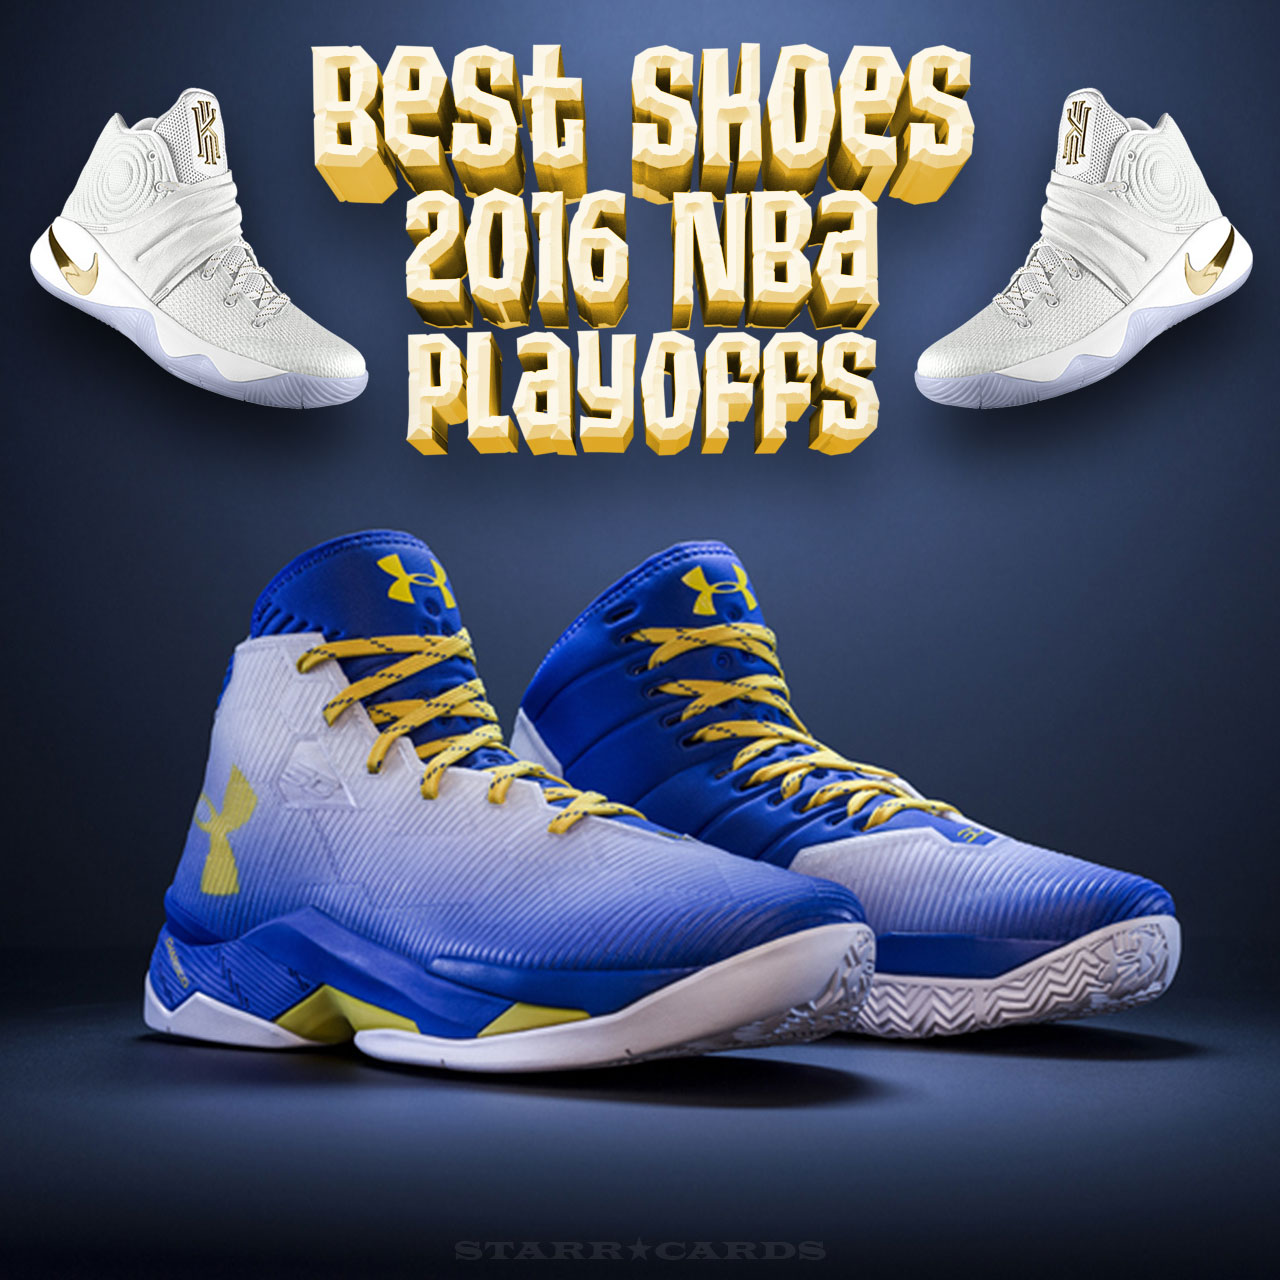 769cd4cf016e Steph Curry and Kyrie Irving shoes make Best Shoes 2018 NBA Playoffs list